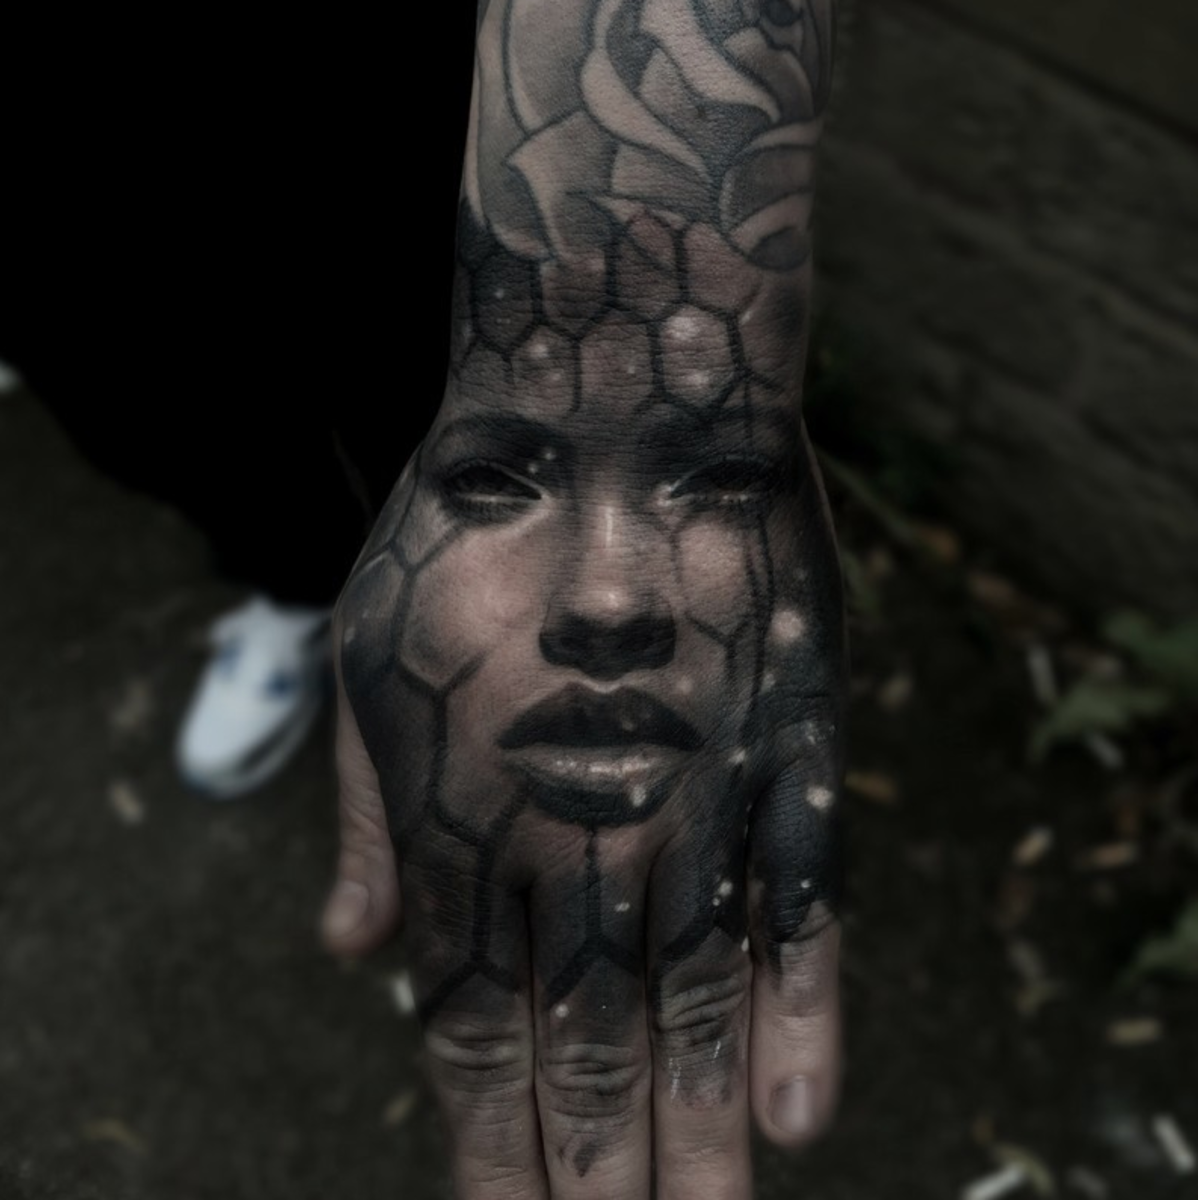 7444949dfbdea Inked Select Artist: Jak Connolly - Tattoo Ideas, Artists and Models